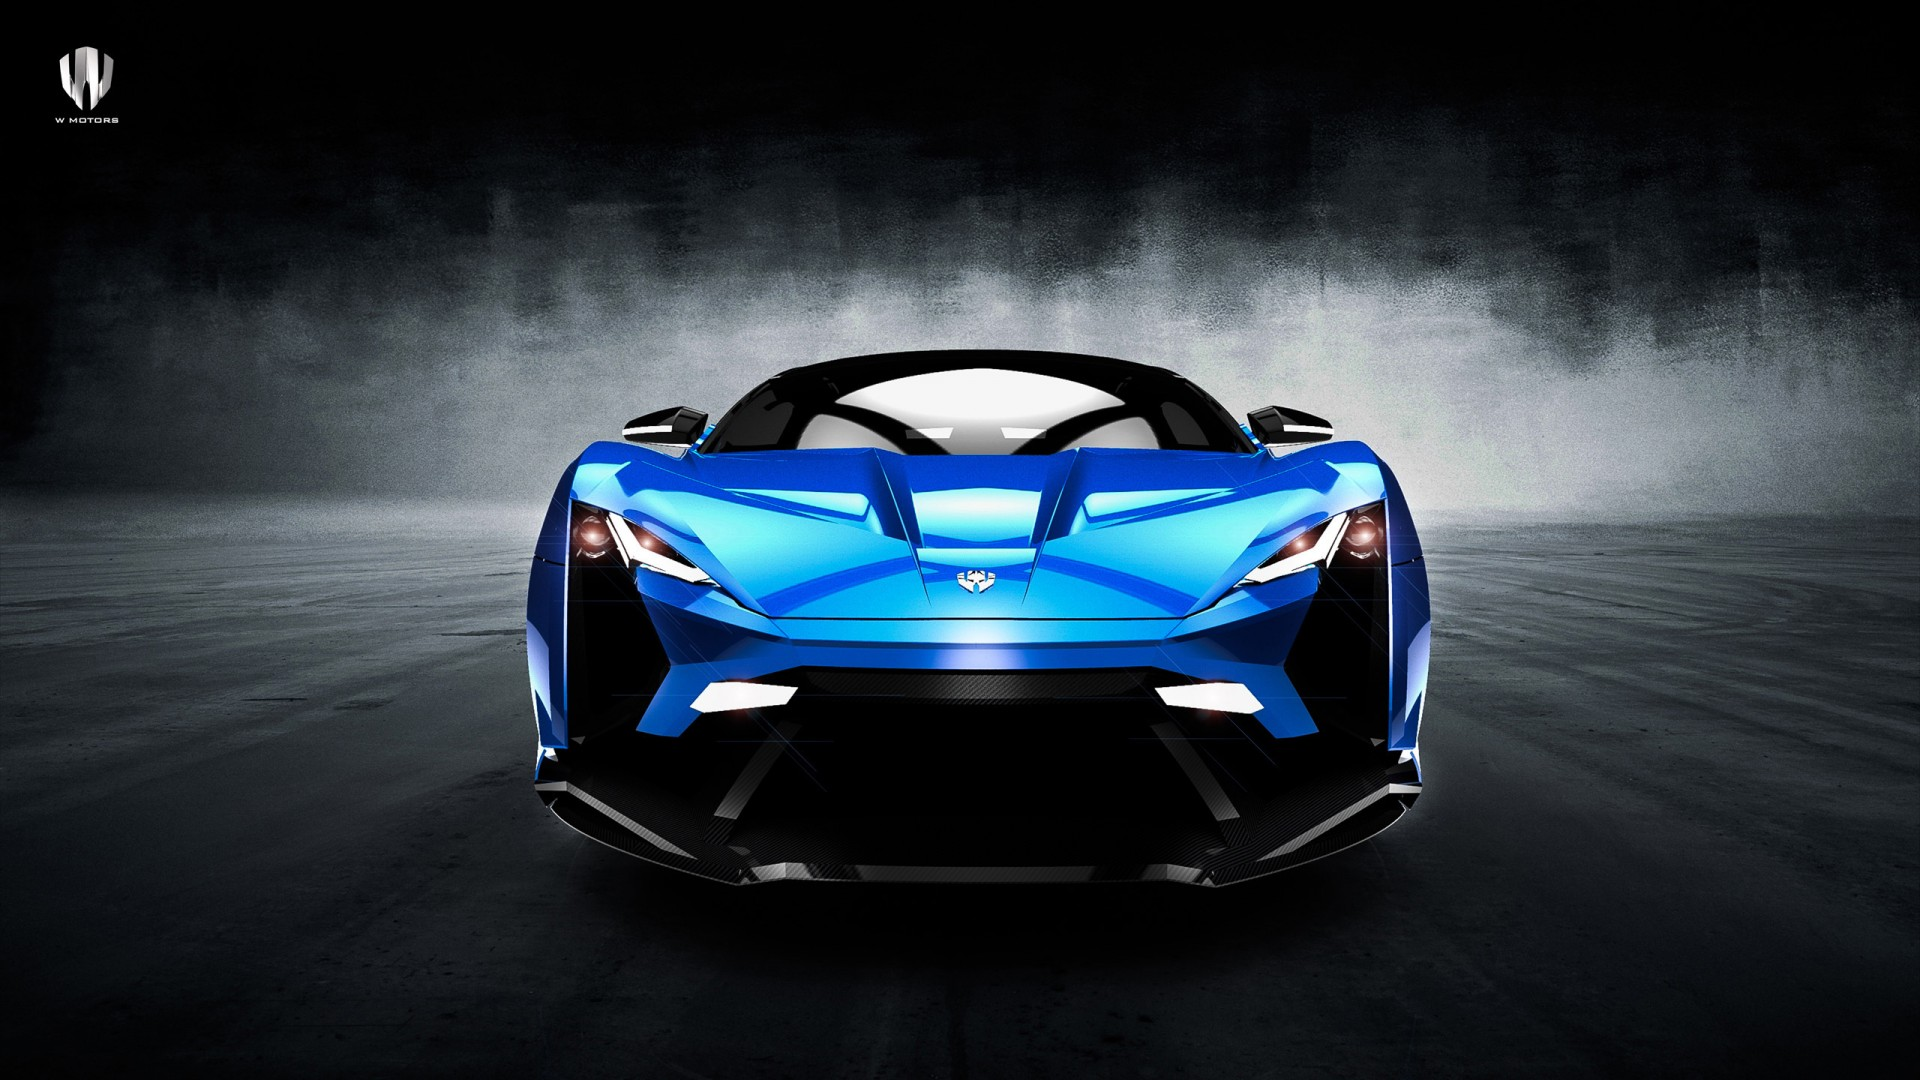 2015 w motors lykan supersport wallpaper hd car wallpapers